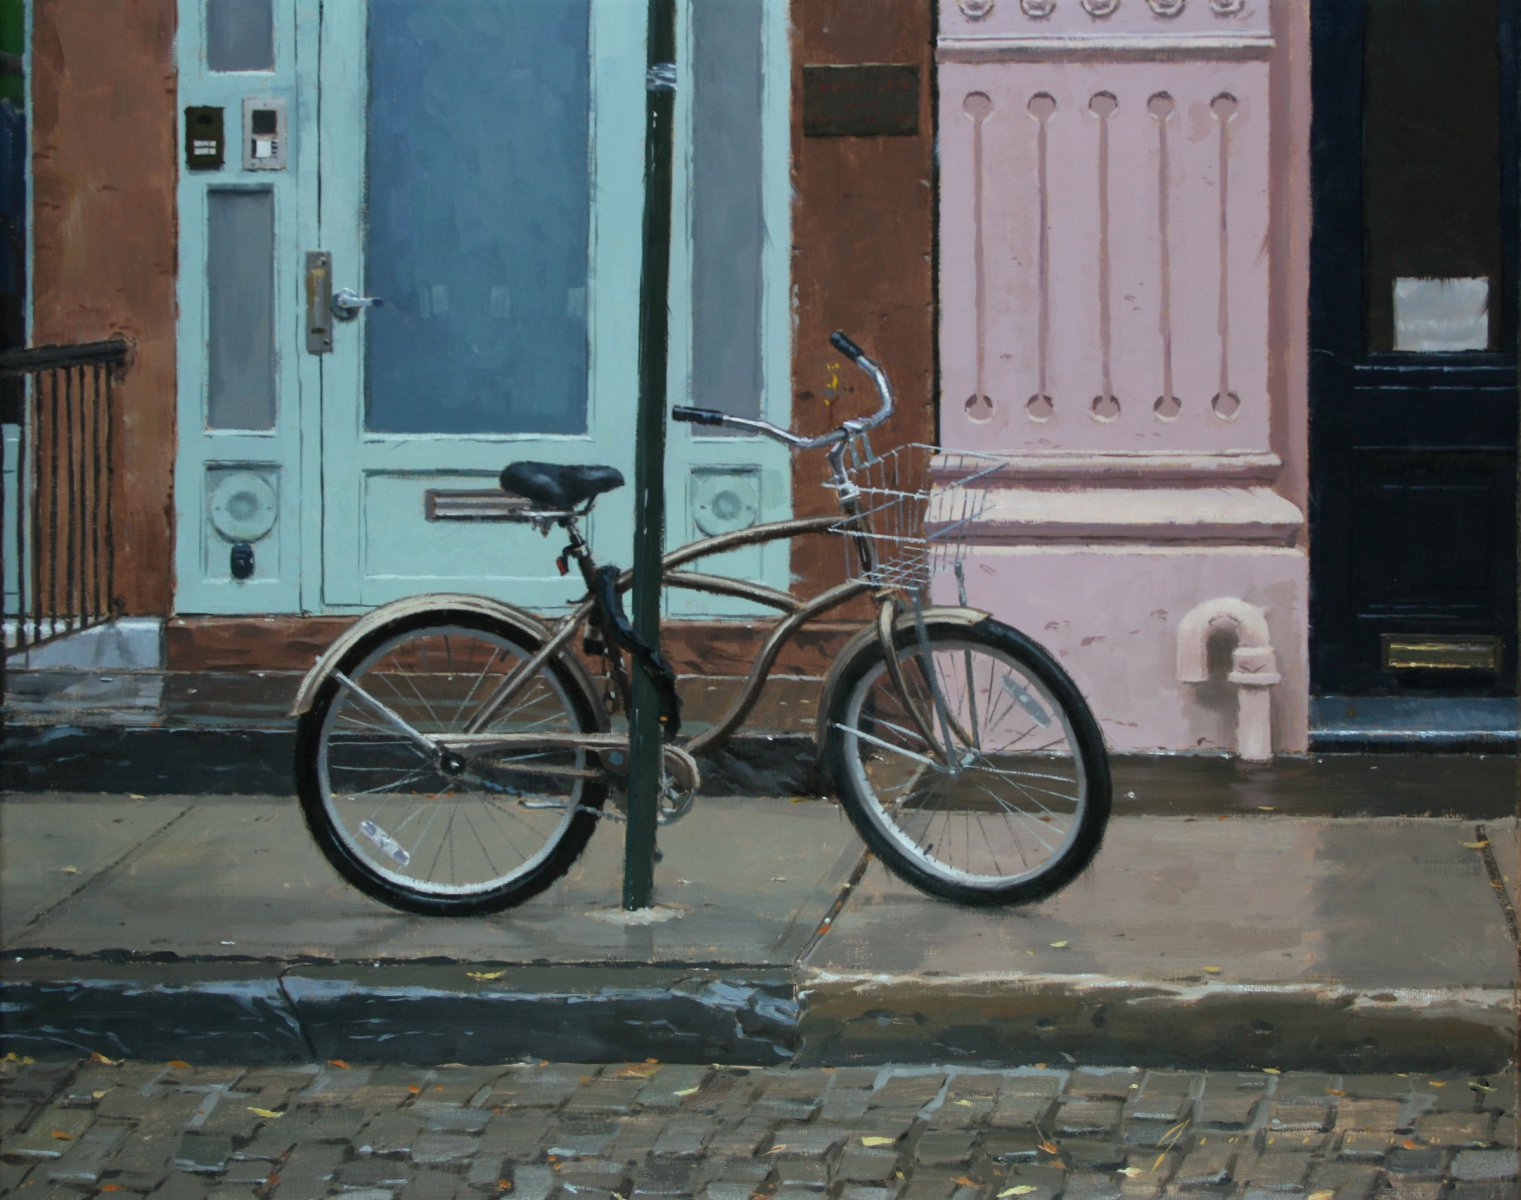 Bicycle in Rain - Vincent Giarrano